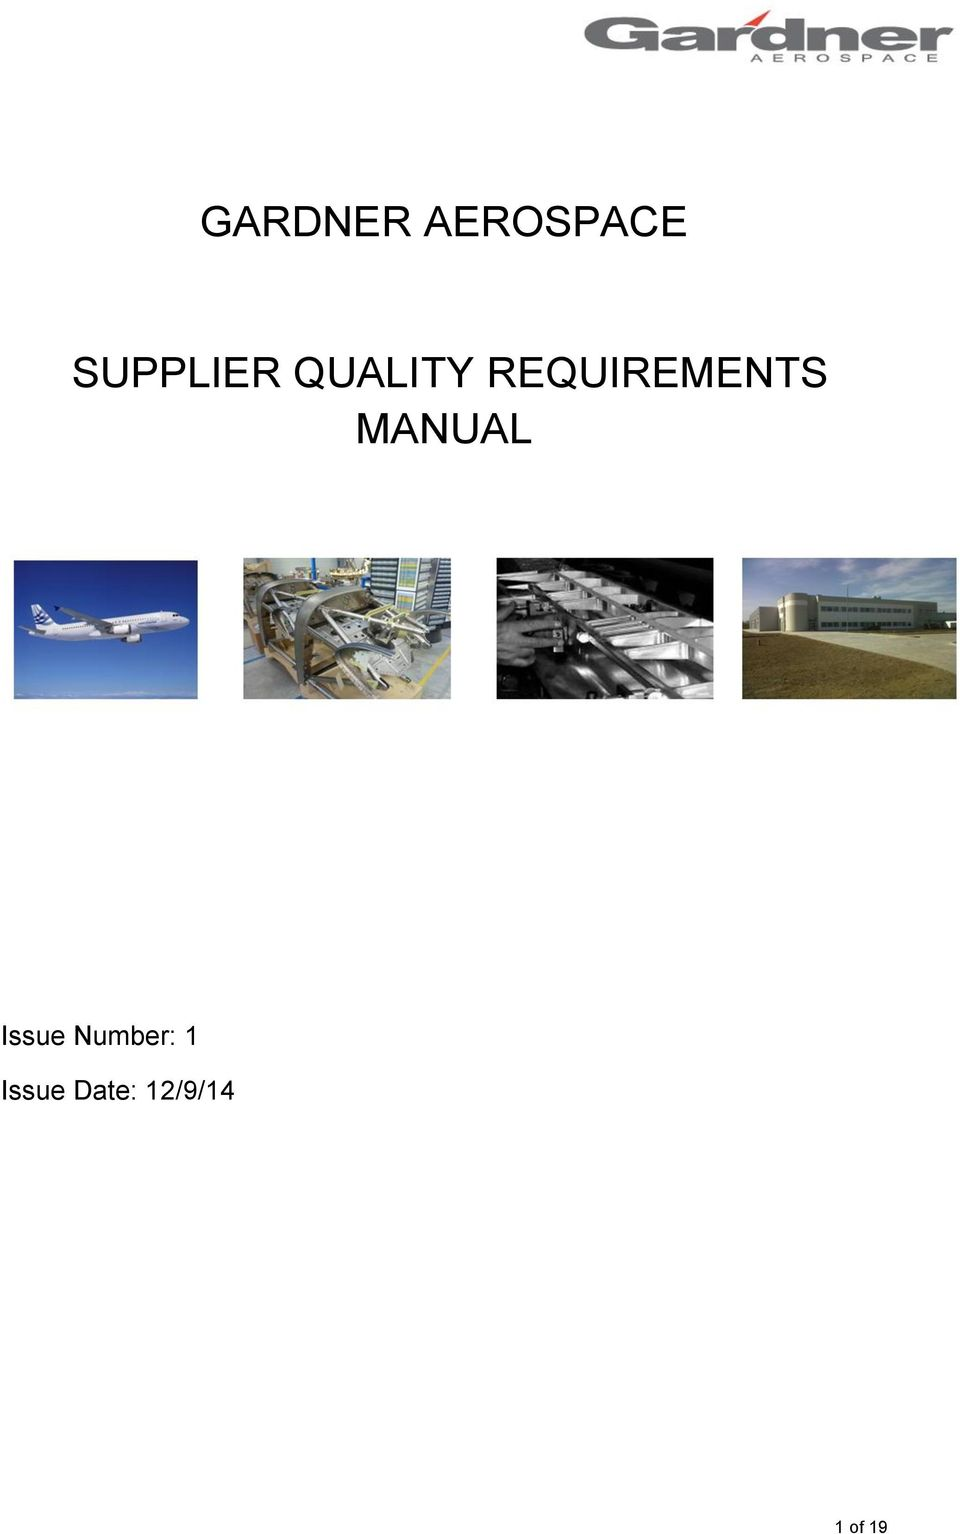 REQUIREMENTS MANUAL